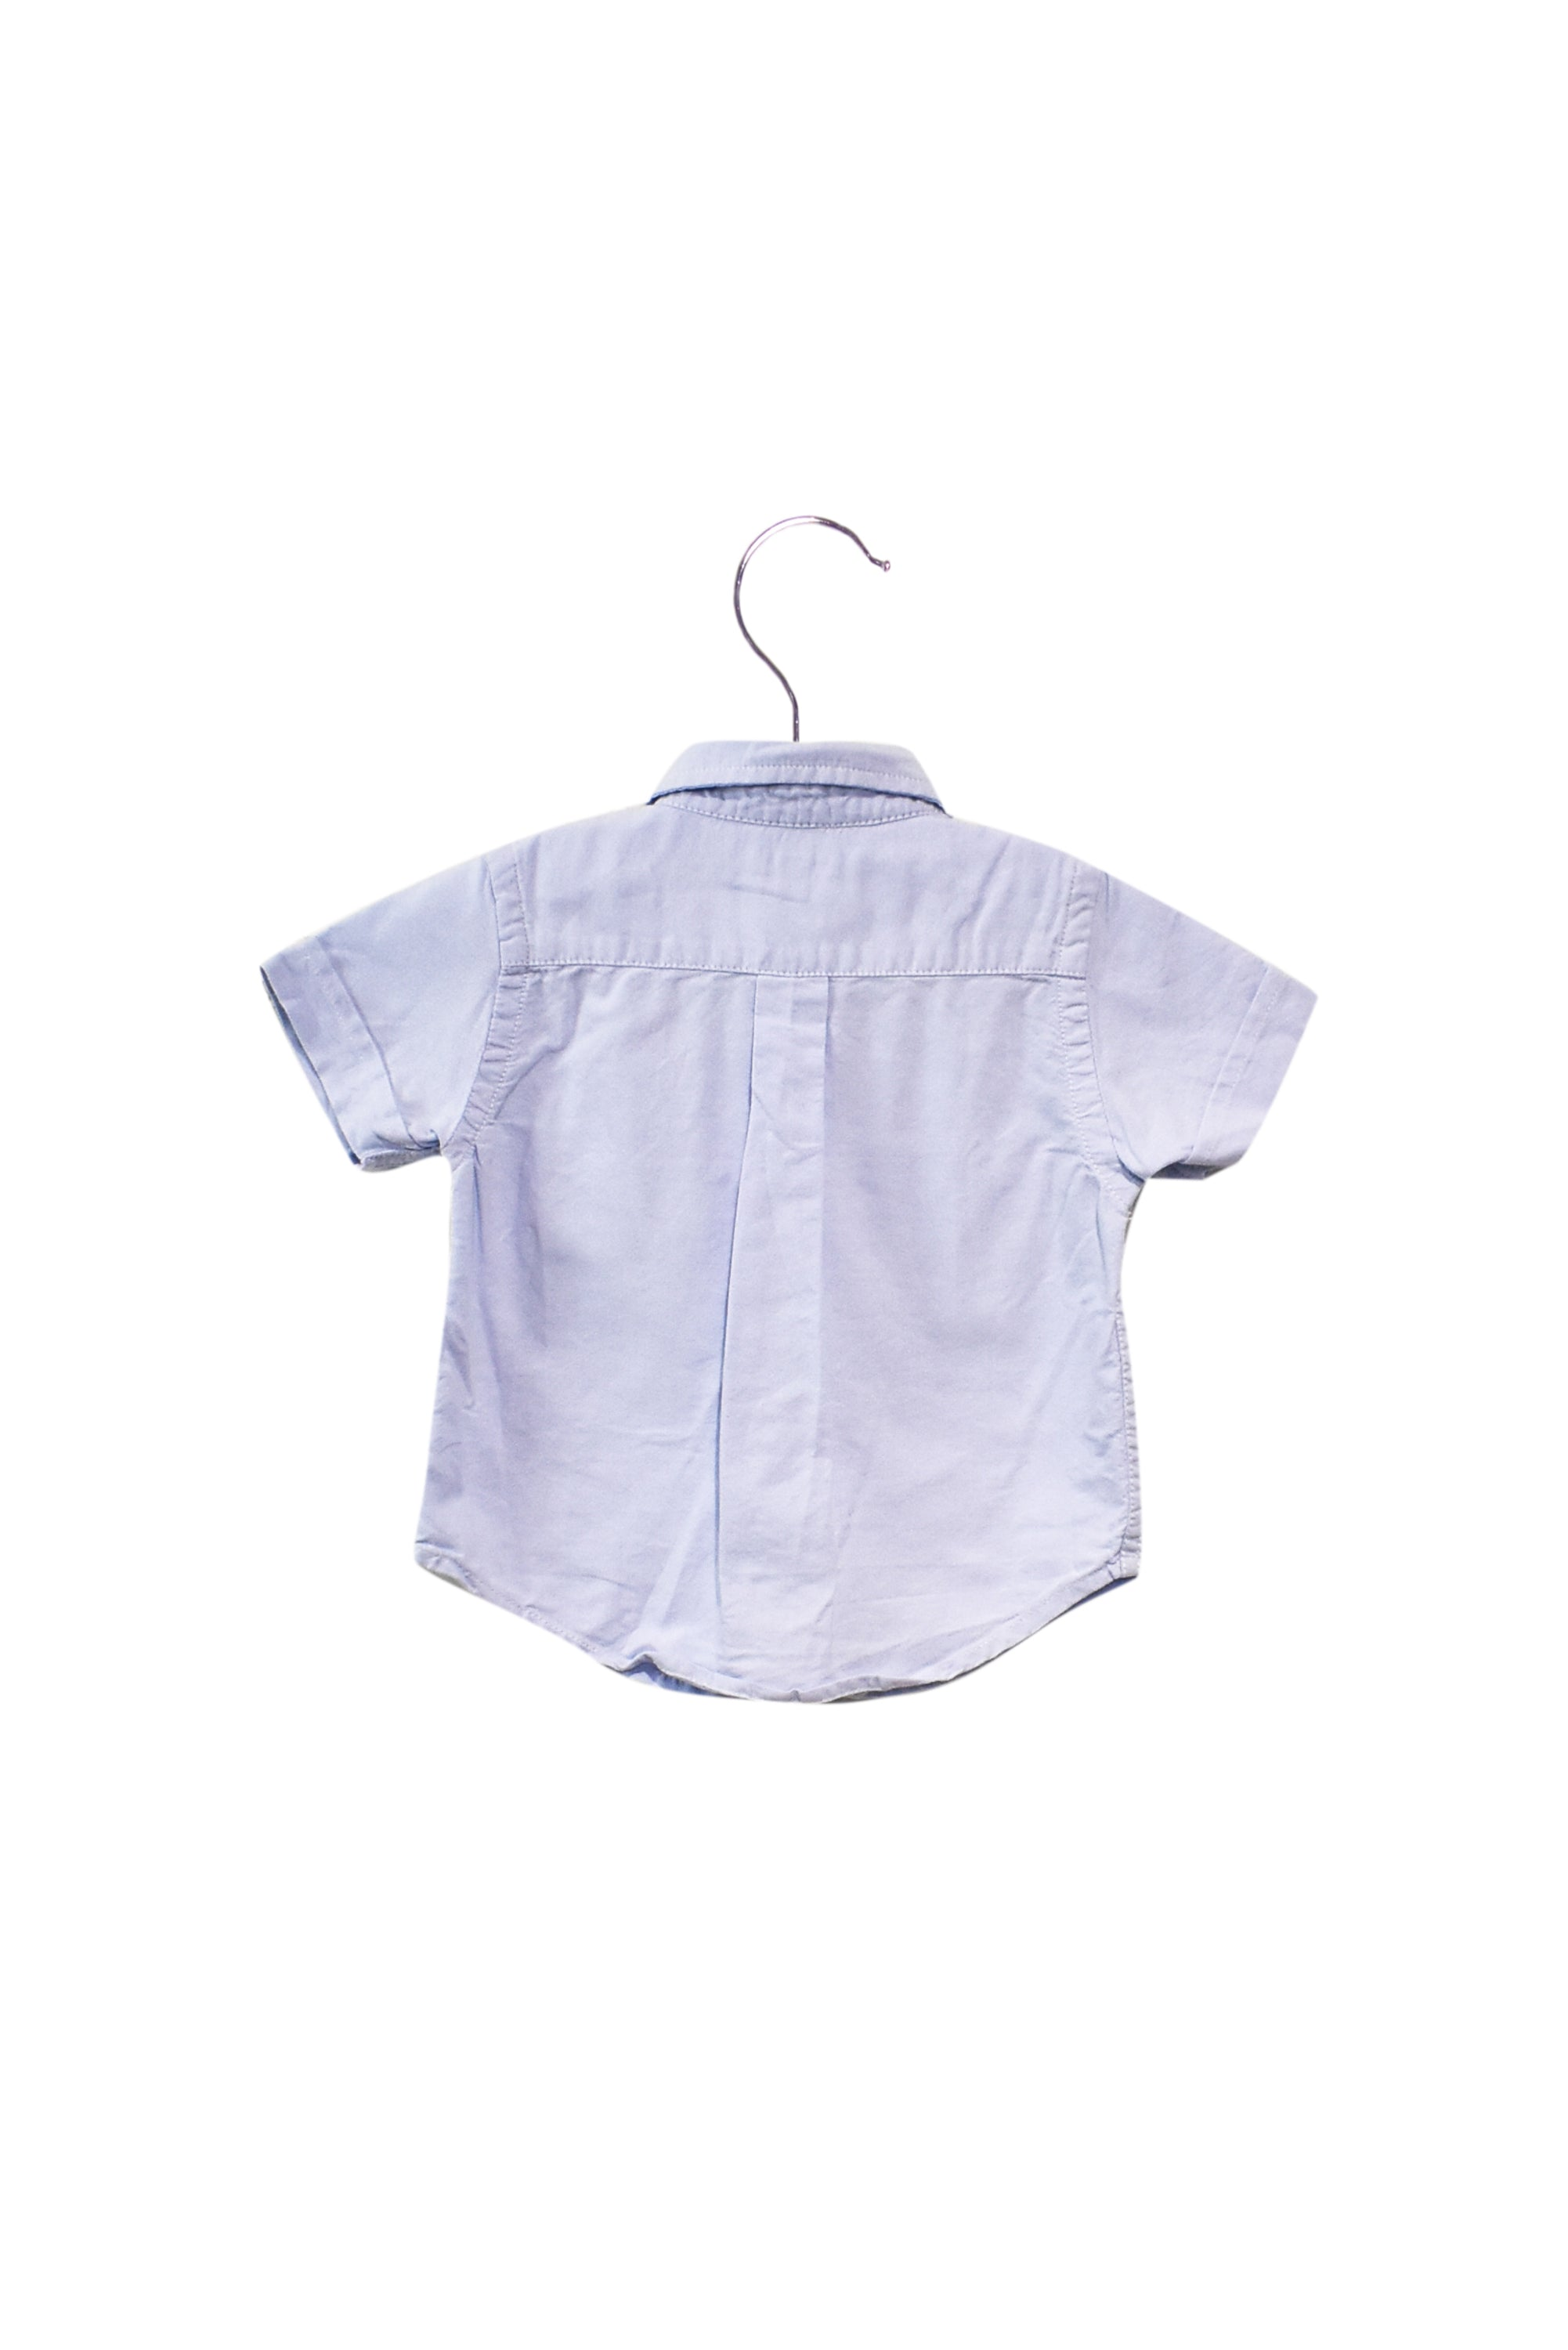 10028387 Acanthe Baby~Shirt 18M at Retykle